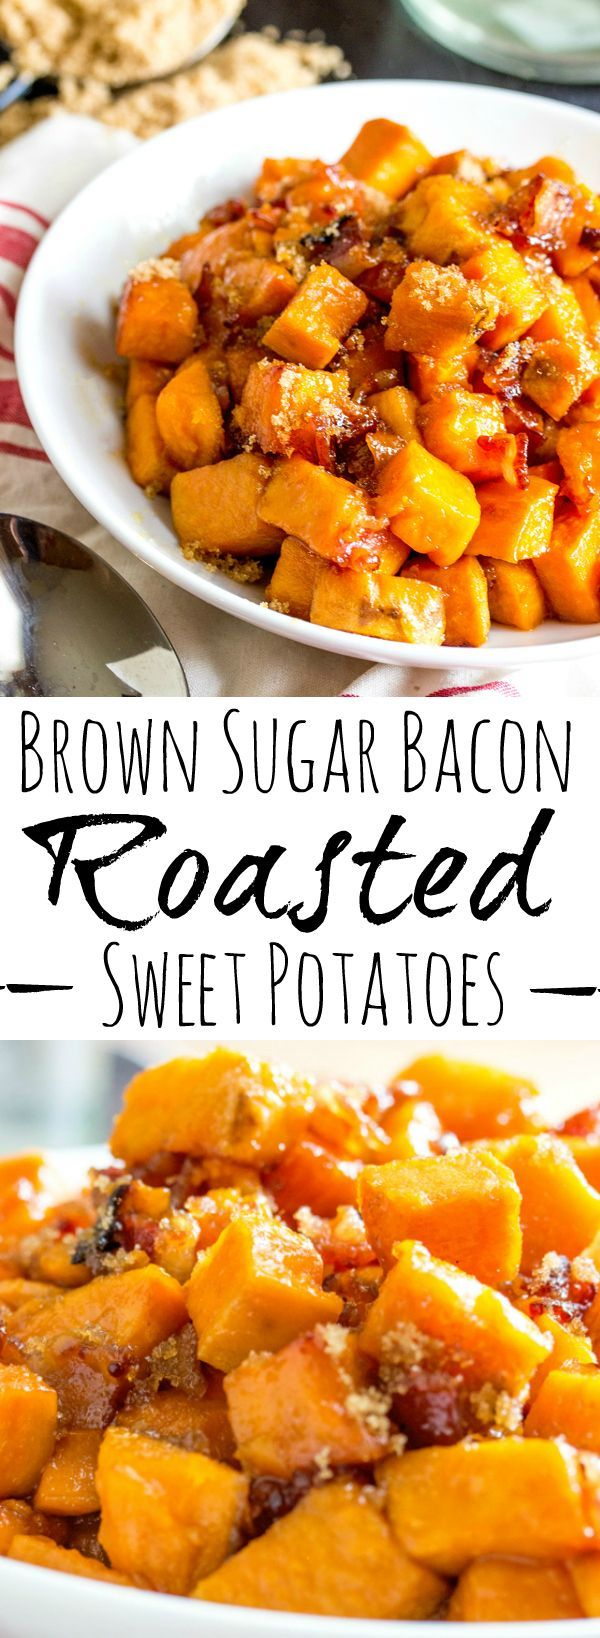 Best Sweet Potatoes For Thanksgiving